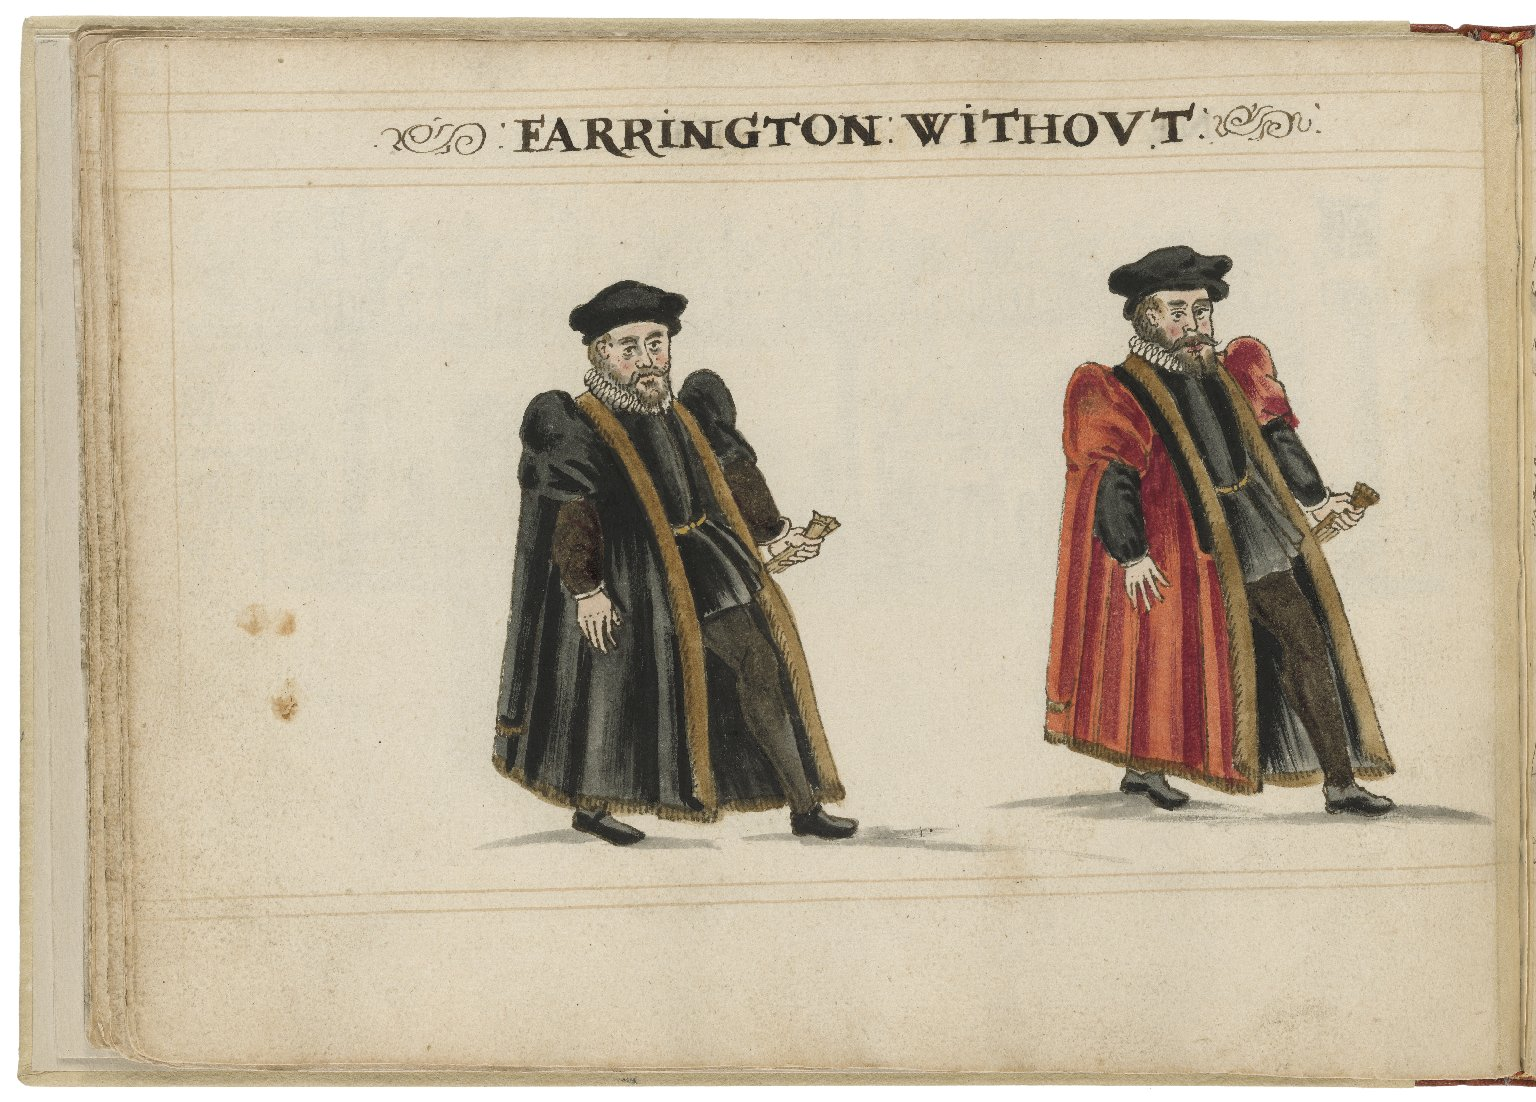 Watercolour painting of the alderman and deputy in charge of Farringdon Without Ward by Hugh Alley. Image courtesy of the Folger Digital Image Collection.